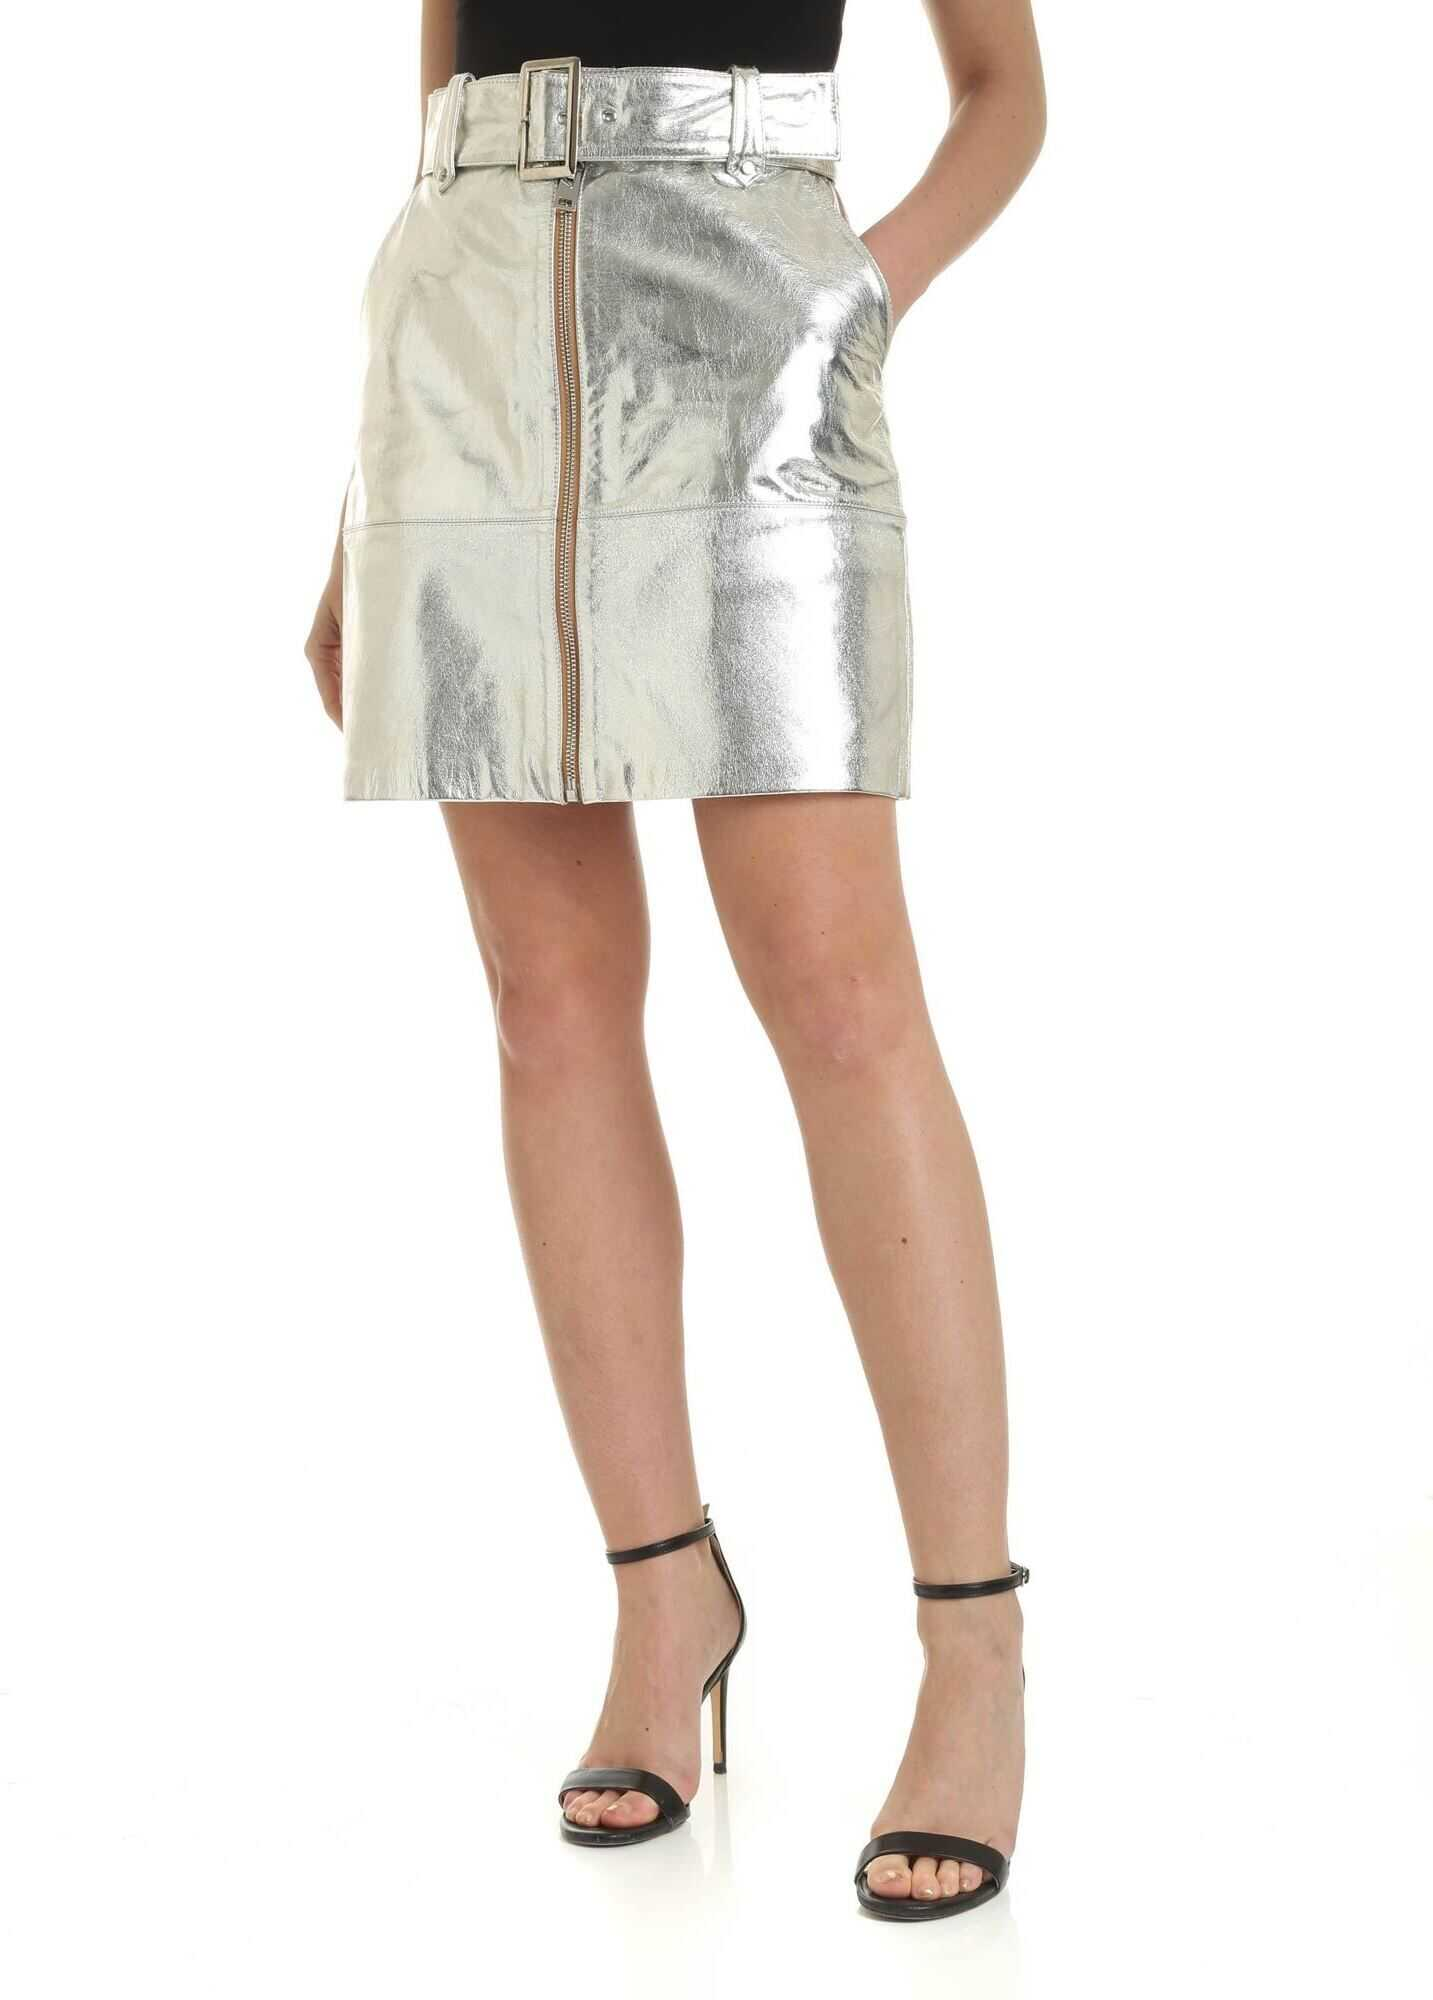 Torta Short Skirt In Silver Color thumbnail